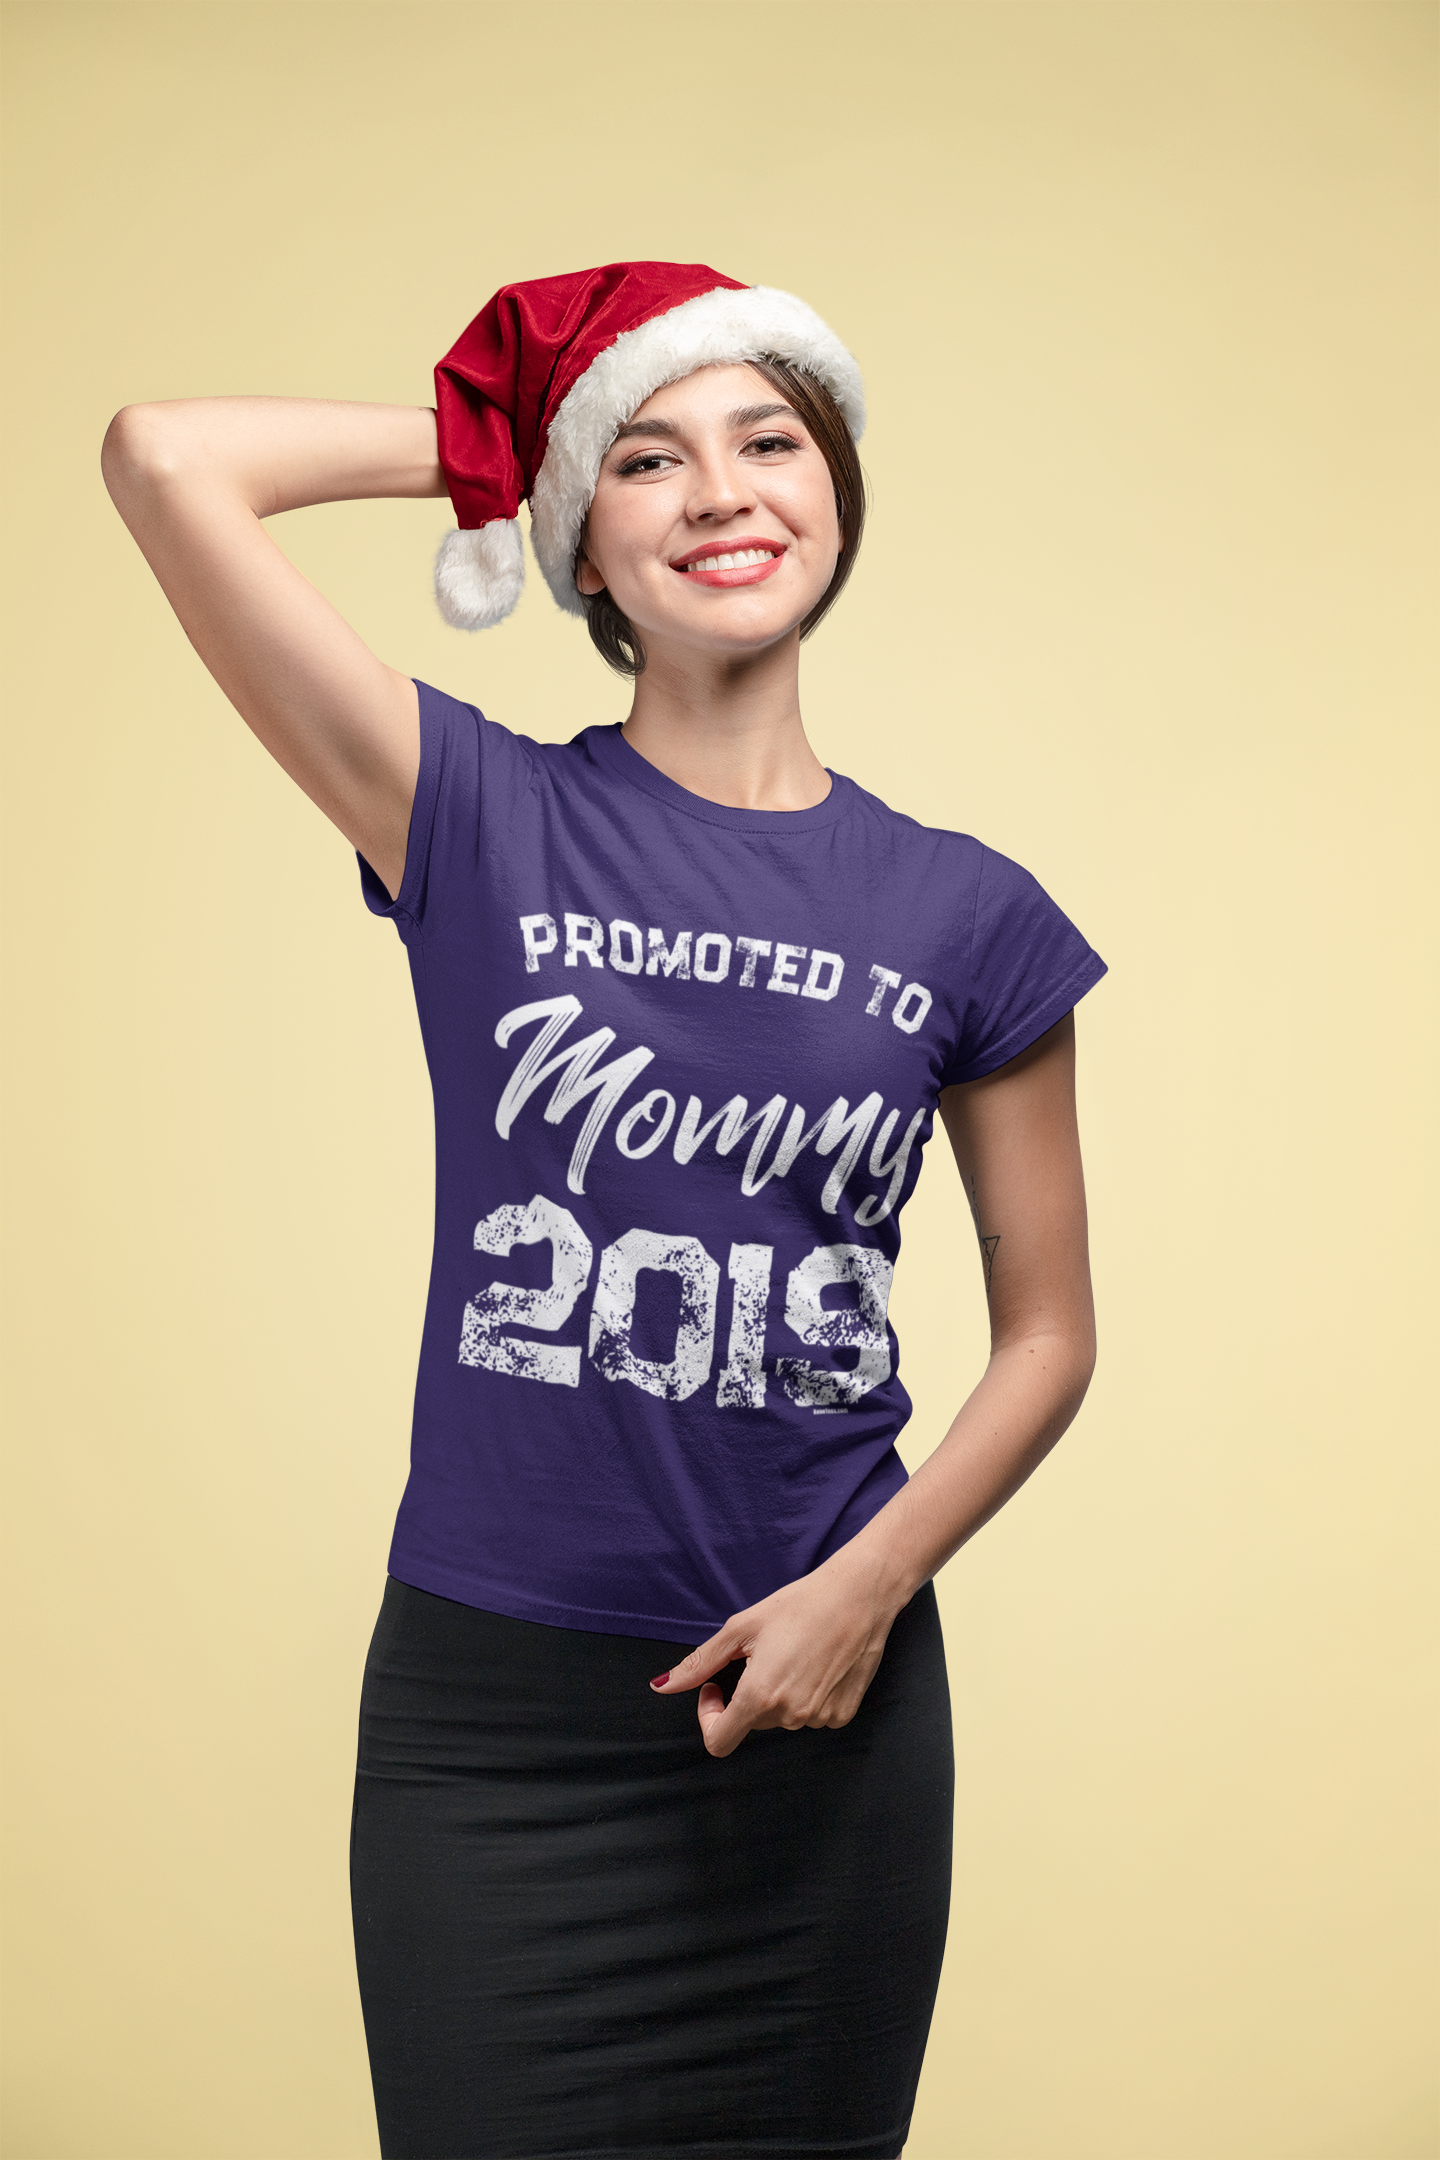 866b56ae Are you going to get promoted to Mommy in 2019? You are pregnant and you  are expecting your first baby? Then this cool gift idea for pregnant women  is a ...